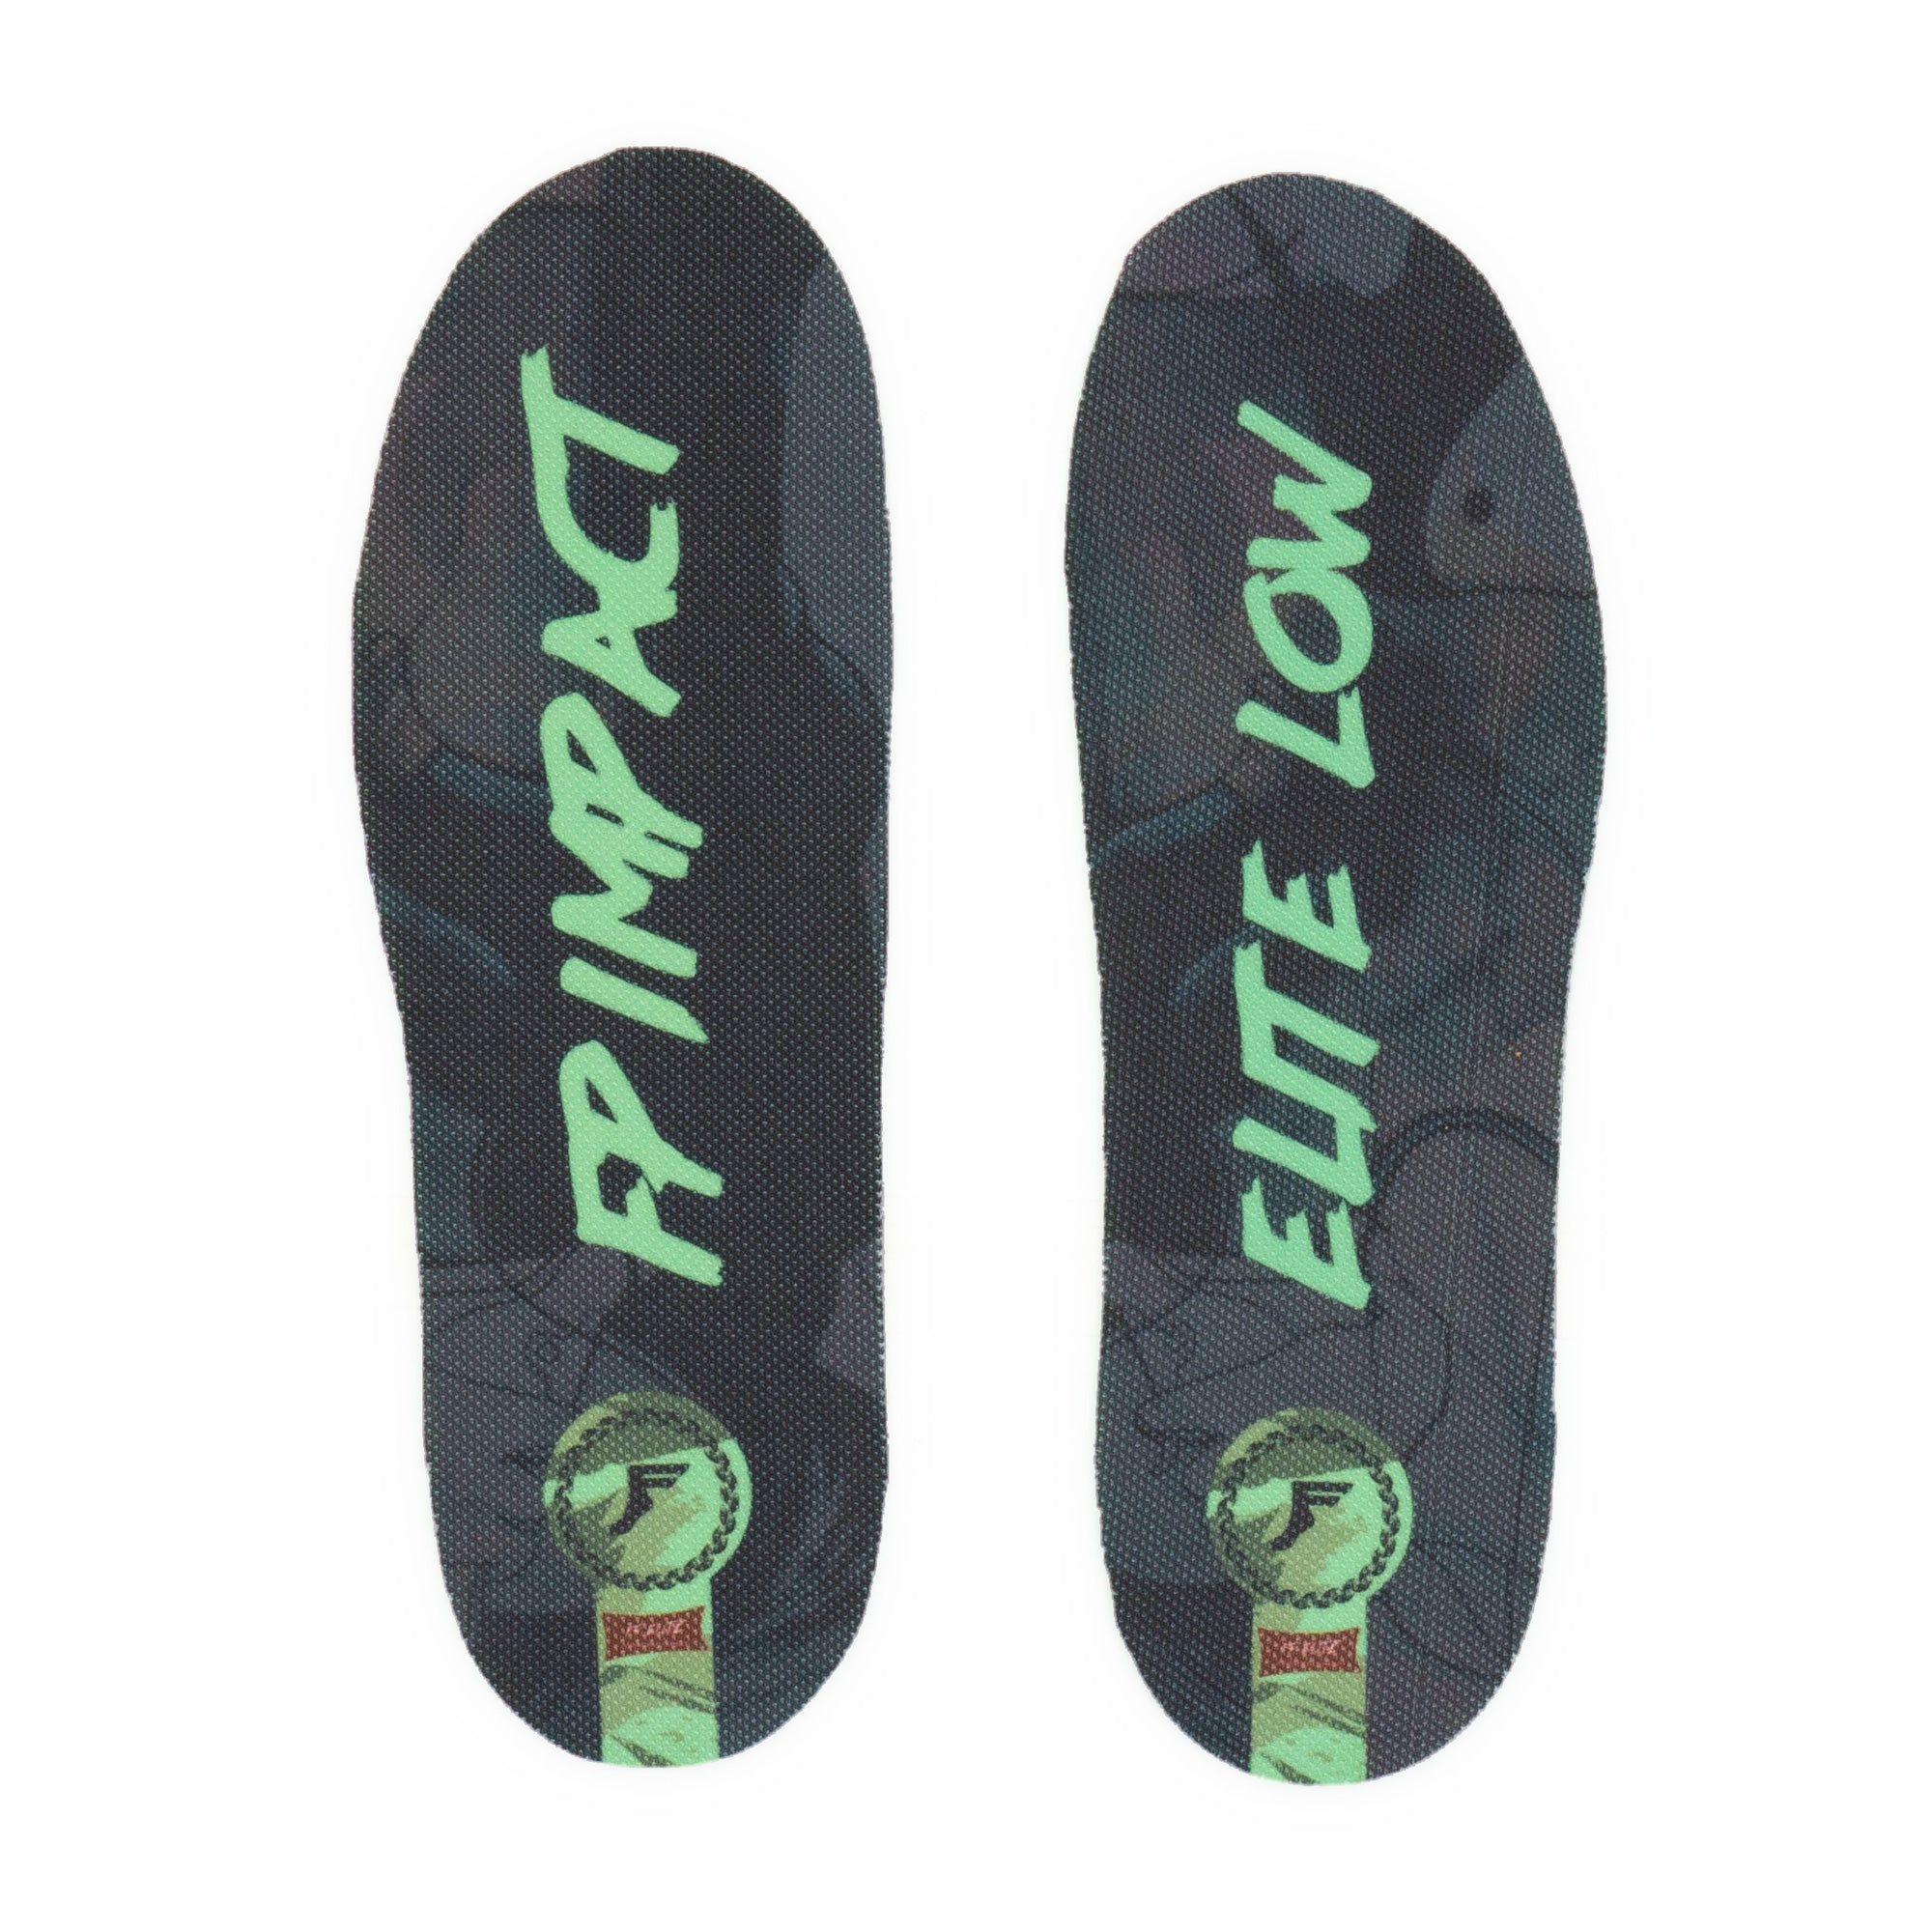 Footprint Elite Low Classic Insoles